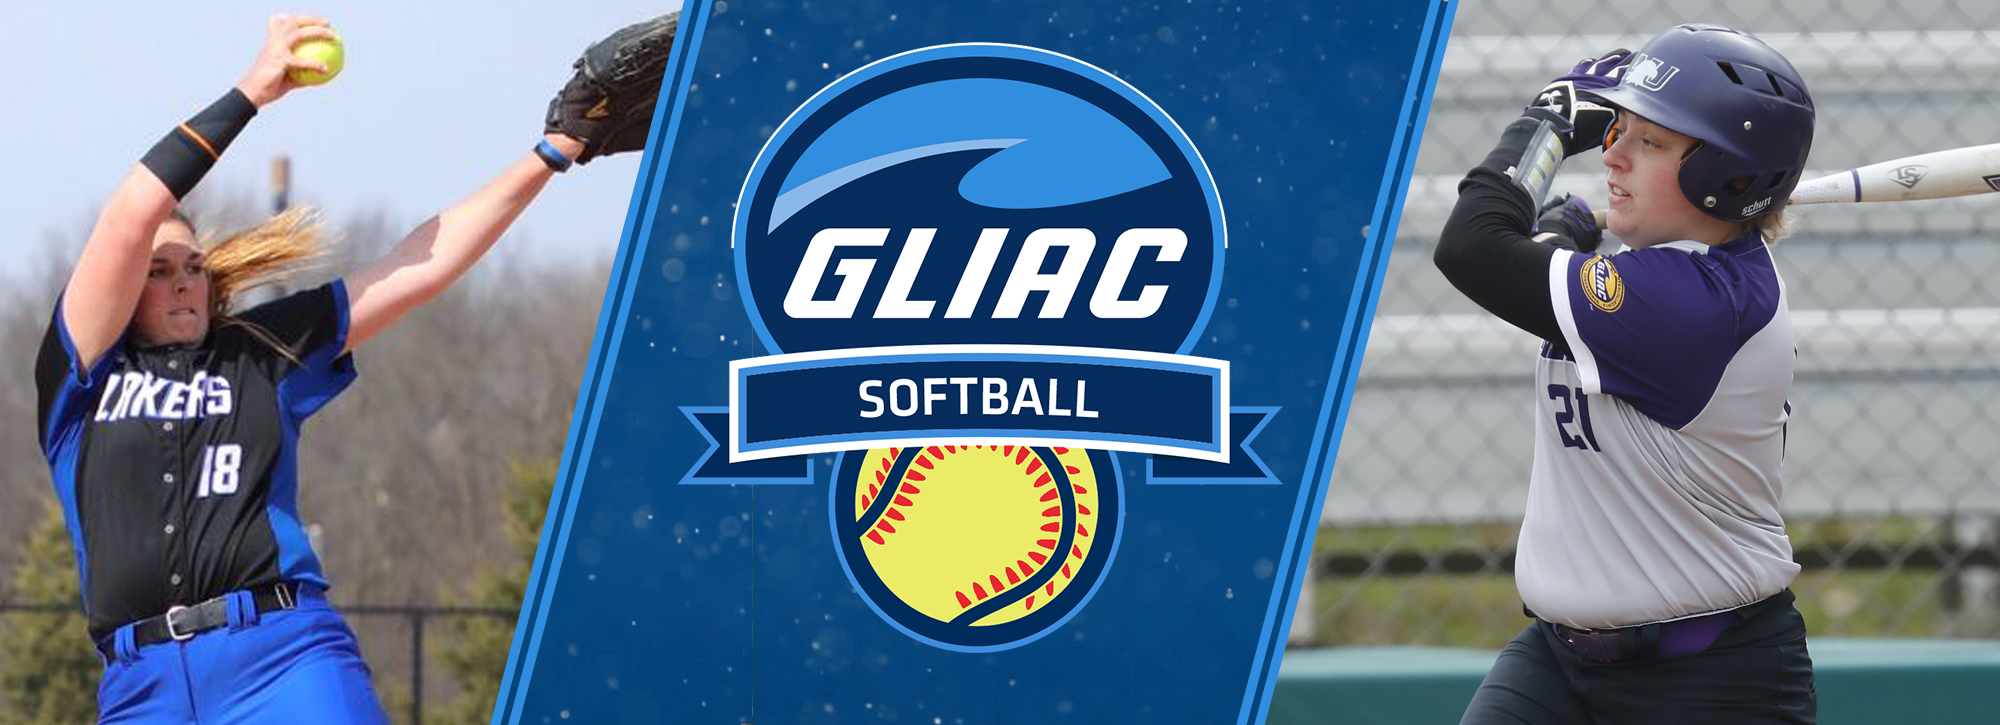 Ashland's Denner and GVSU's Lipvosky garner softball weekly accolades